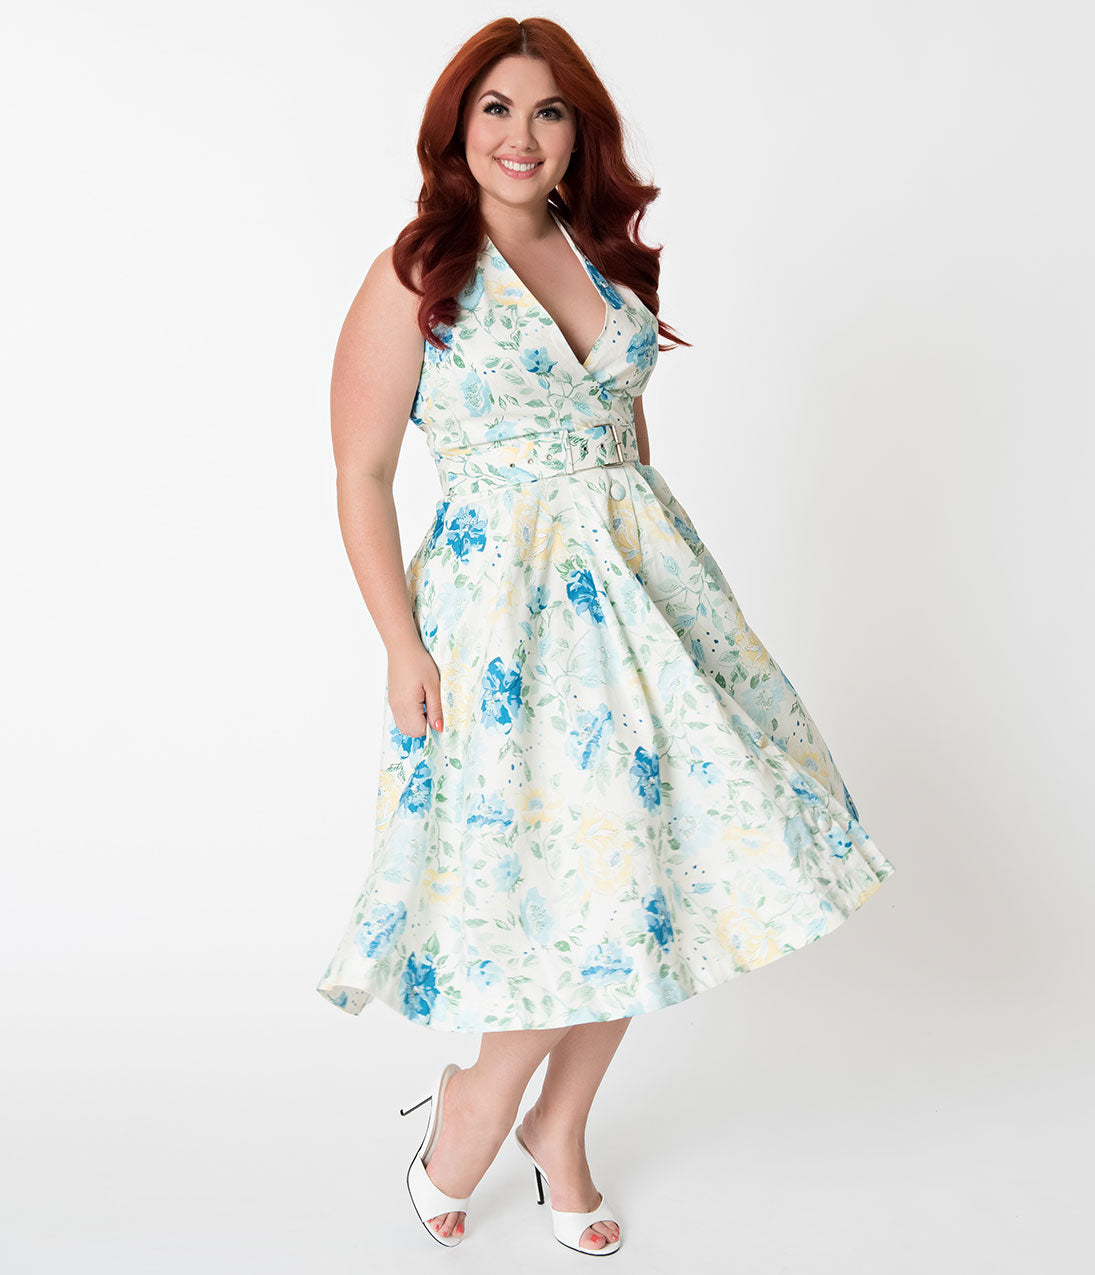 Pin Up Dresses | Pin Up Clothing Janie Bryant For Unique Vintage Plus Size Ivory  Floral Print Halter Tarrytown Hostess Dress $148.00 AT vintagedancer.com